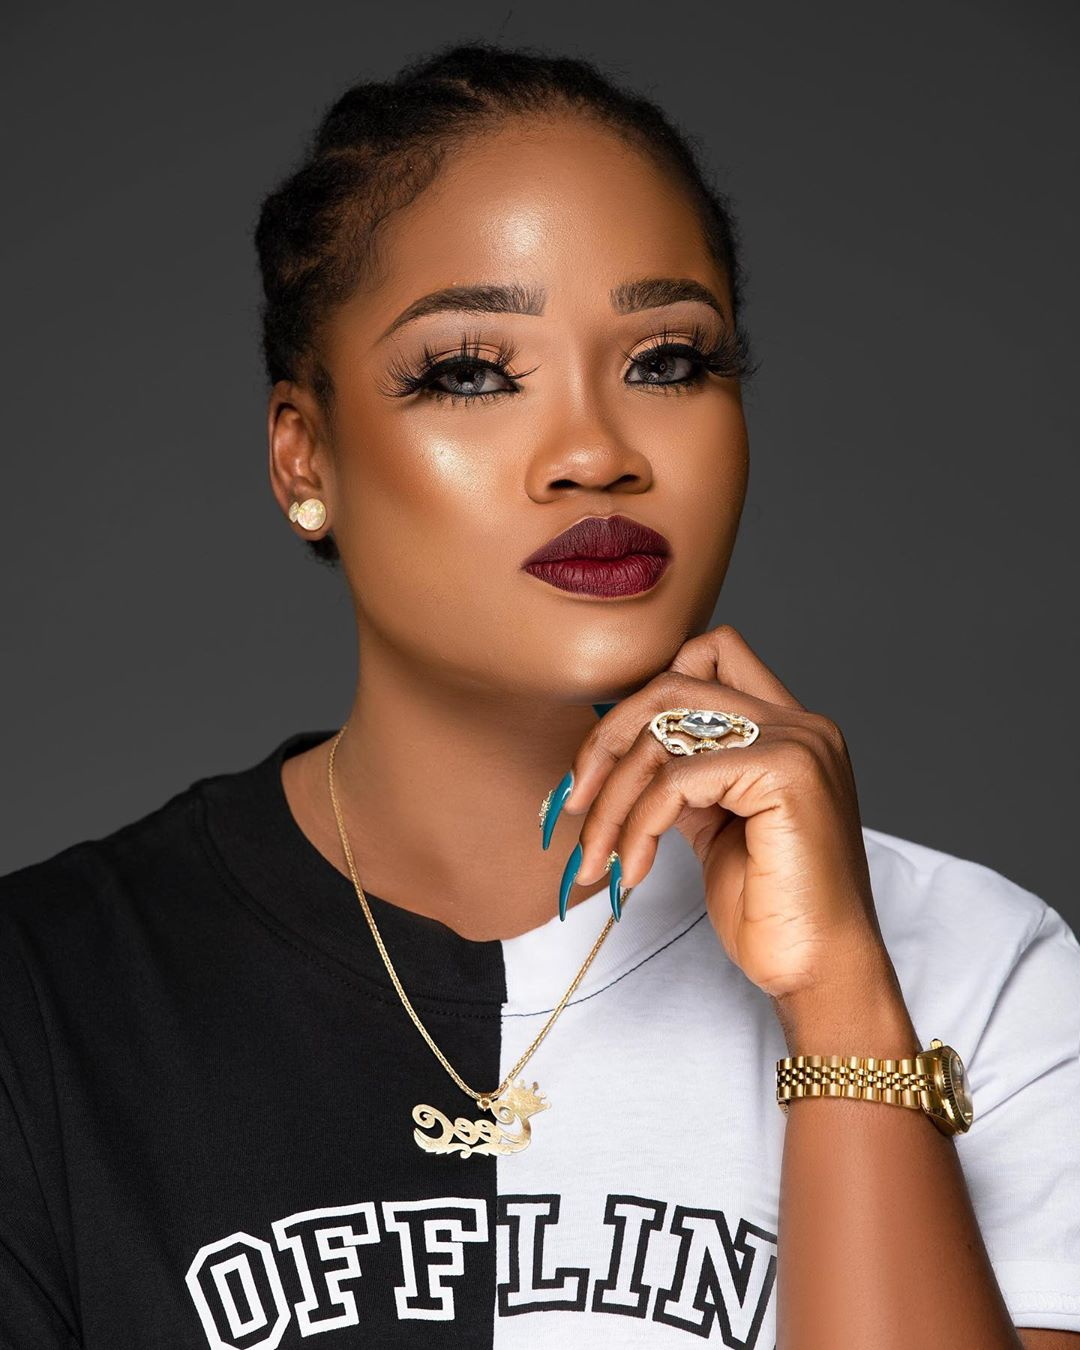 red-lippie-with fluffy-lashes-face-beat-of-cee-c-style-rave